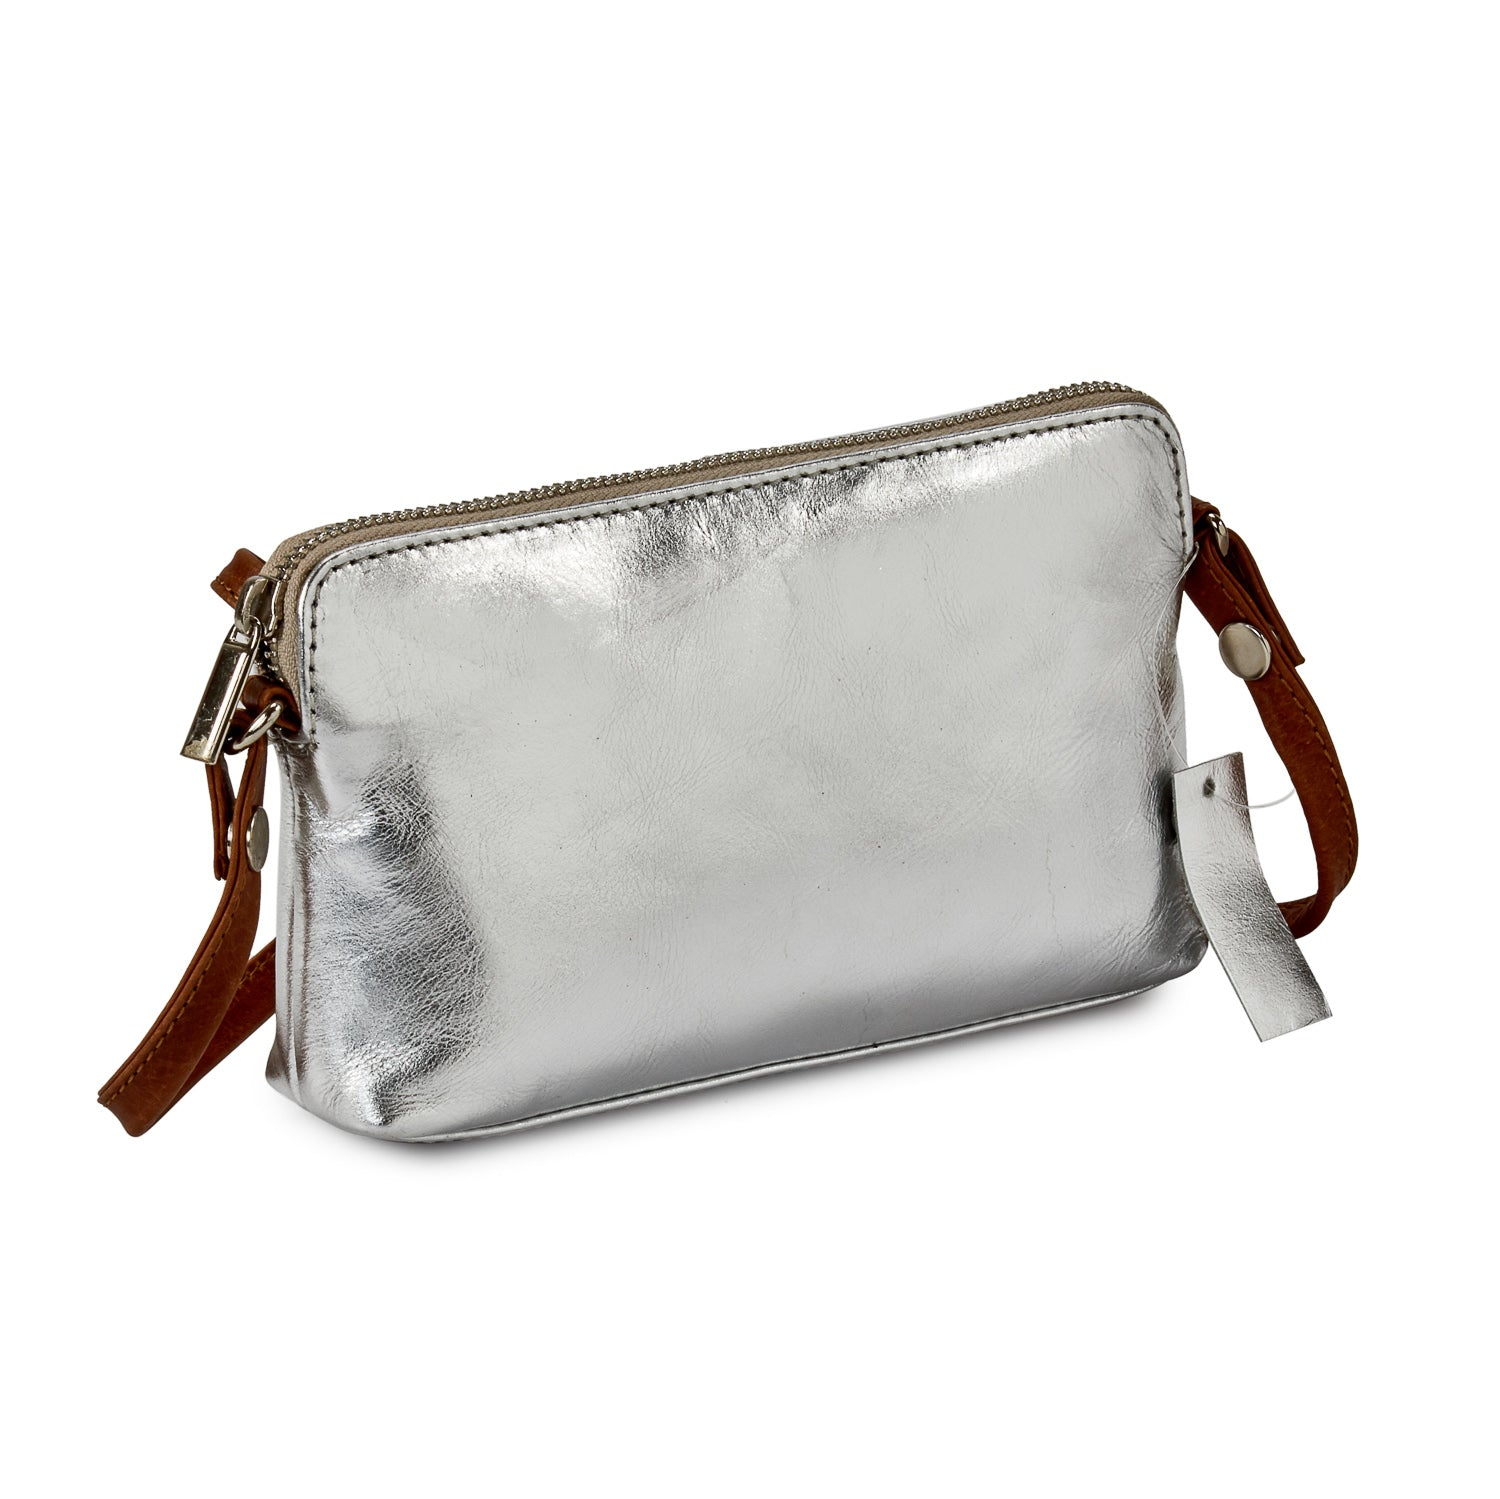 HYDESTYLE Metallic Magpie NEL Clutch Bag #LB87 Silver